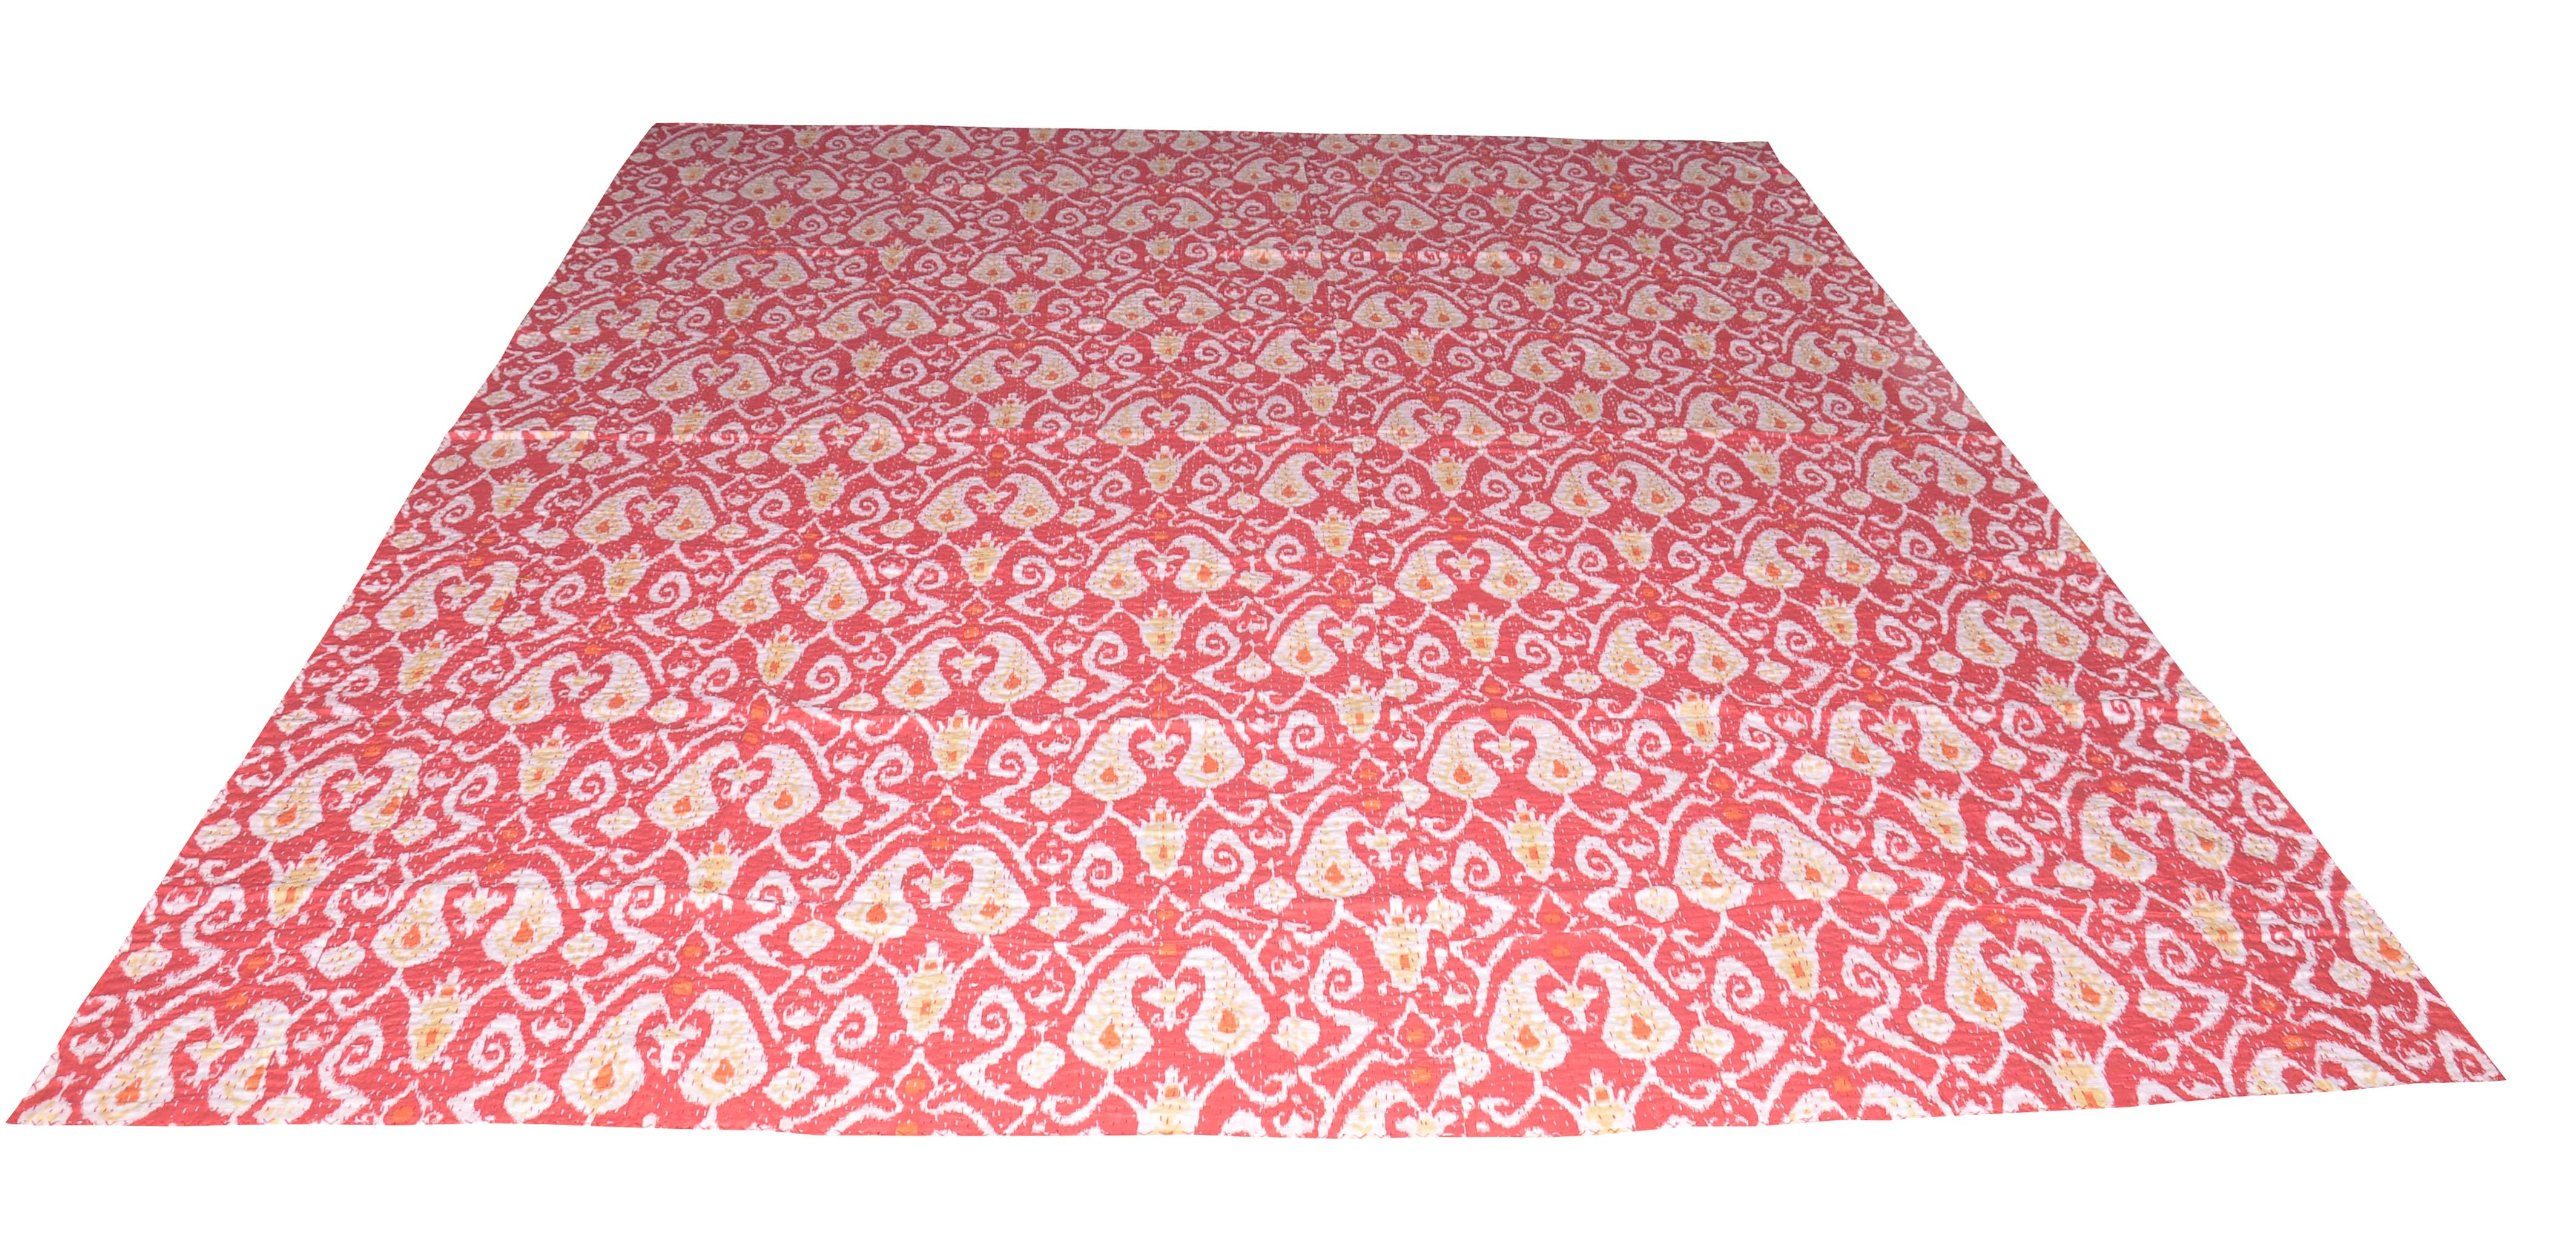 100% Cotton Quilt Floral Pattern Home Décor Kantha Multi Color Reversible Patchwork Bedspread, 90 X 108 Inches by Rajasthali (Image #4)